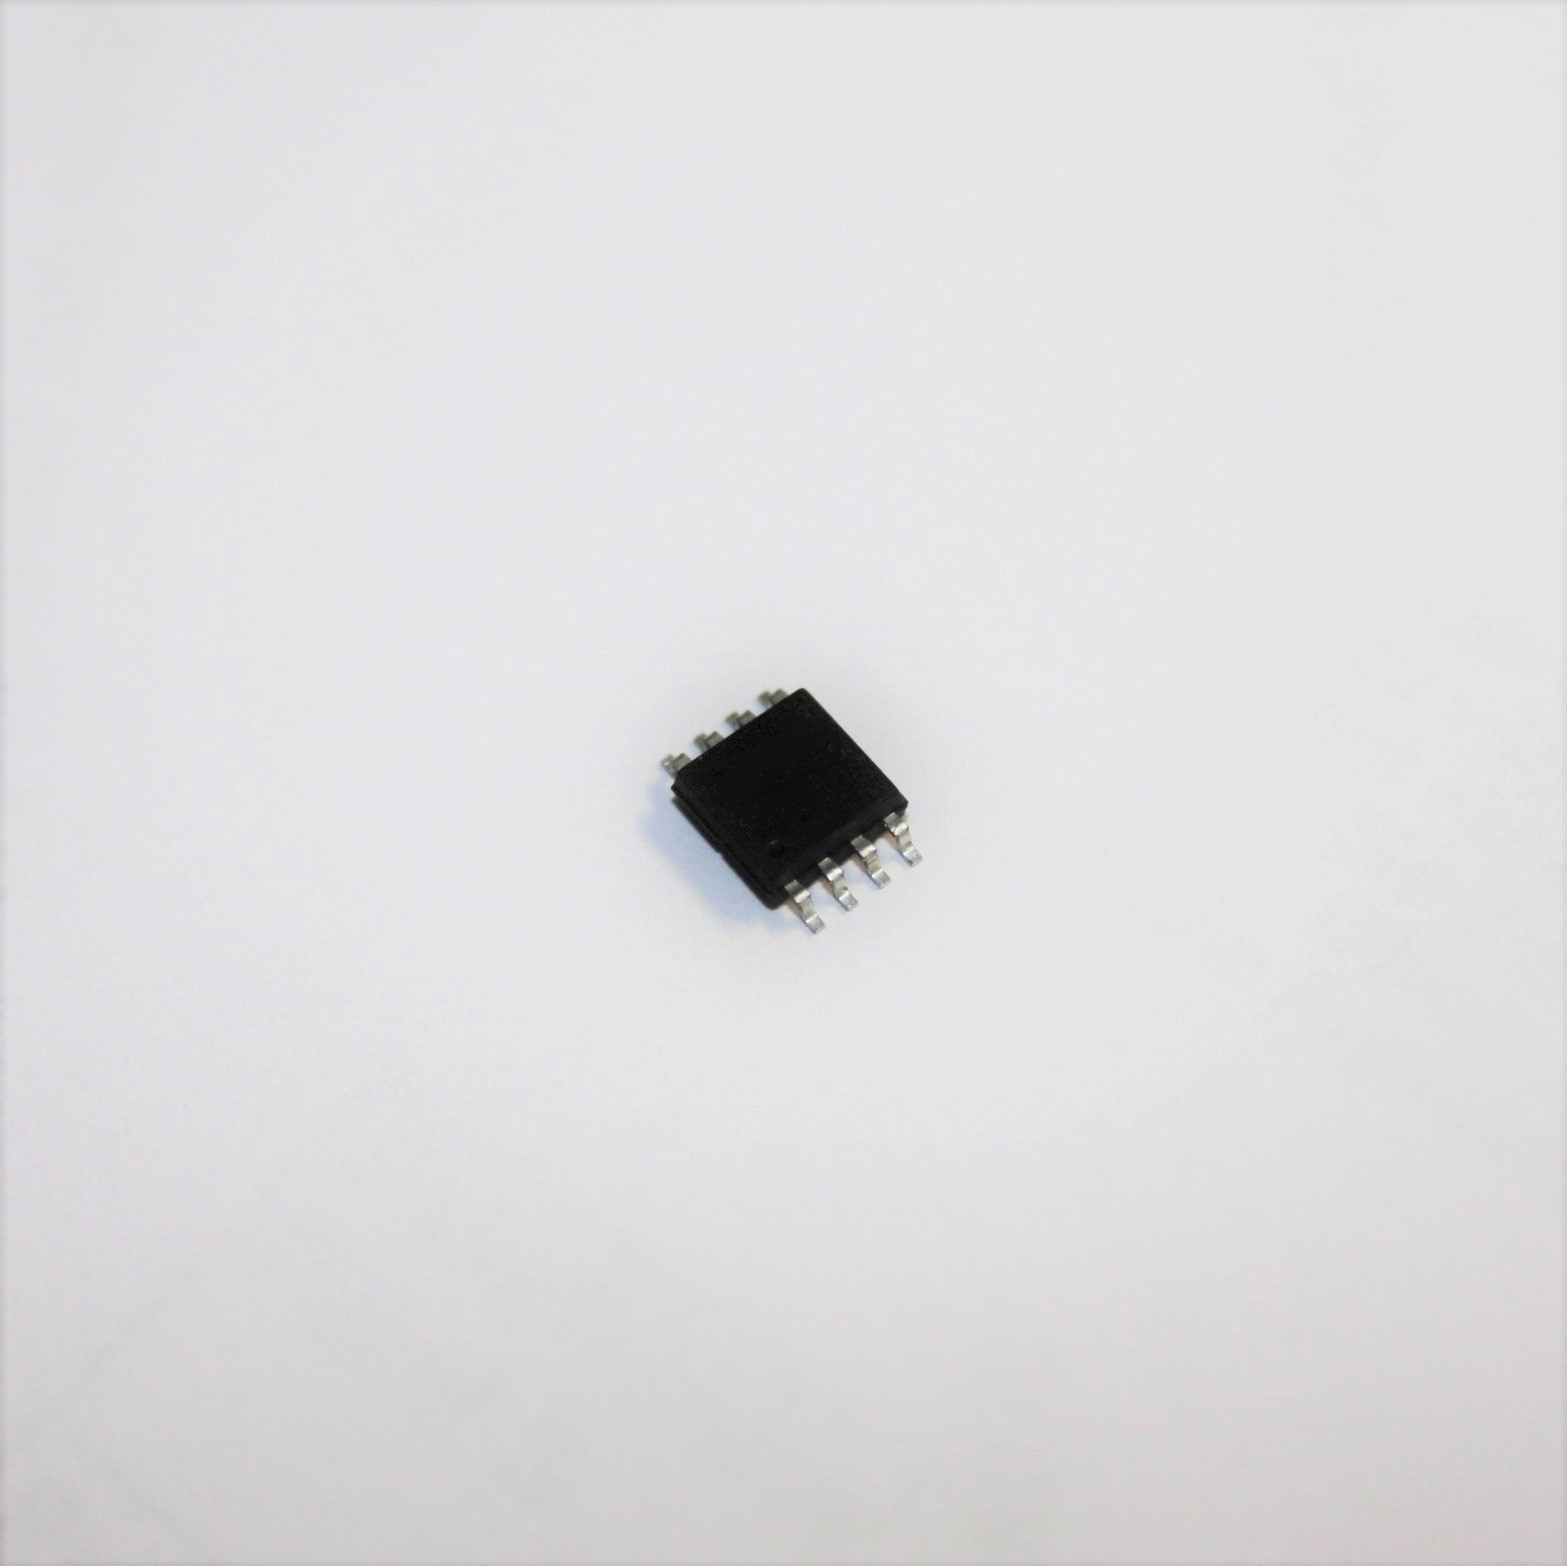 SST 25VF032B 80-4I-S2AF, 32Mbit SPI Serial Flash, SOIC-8